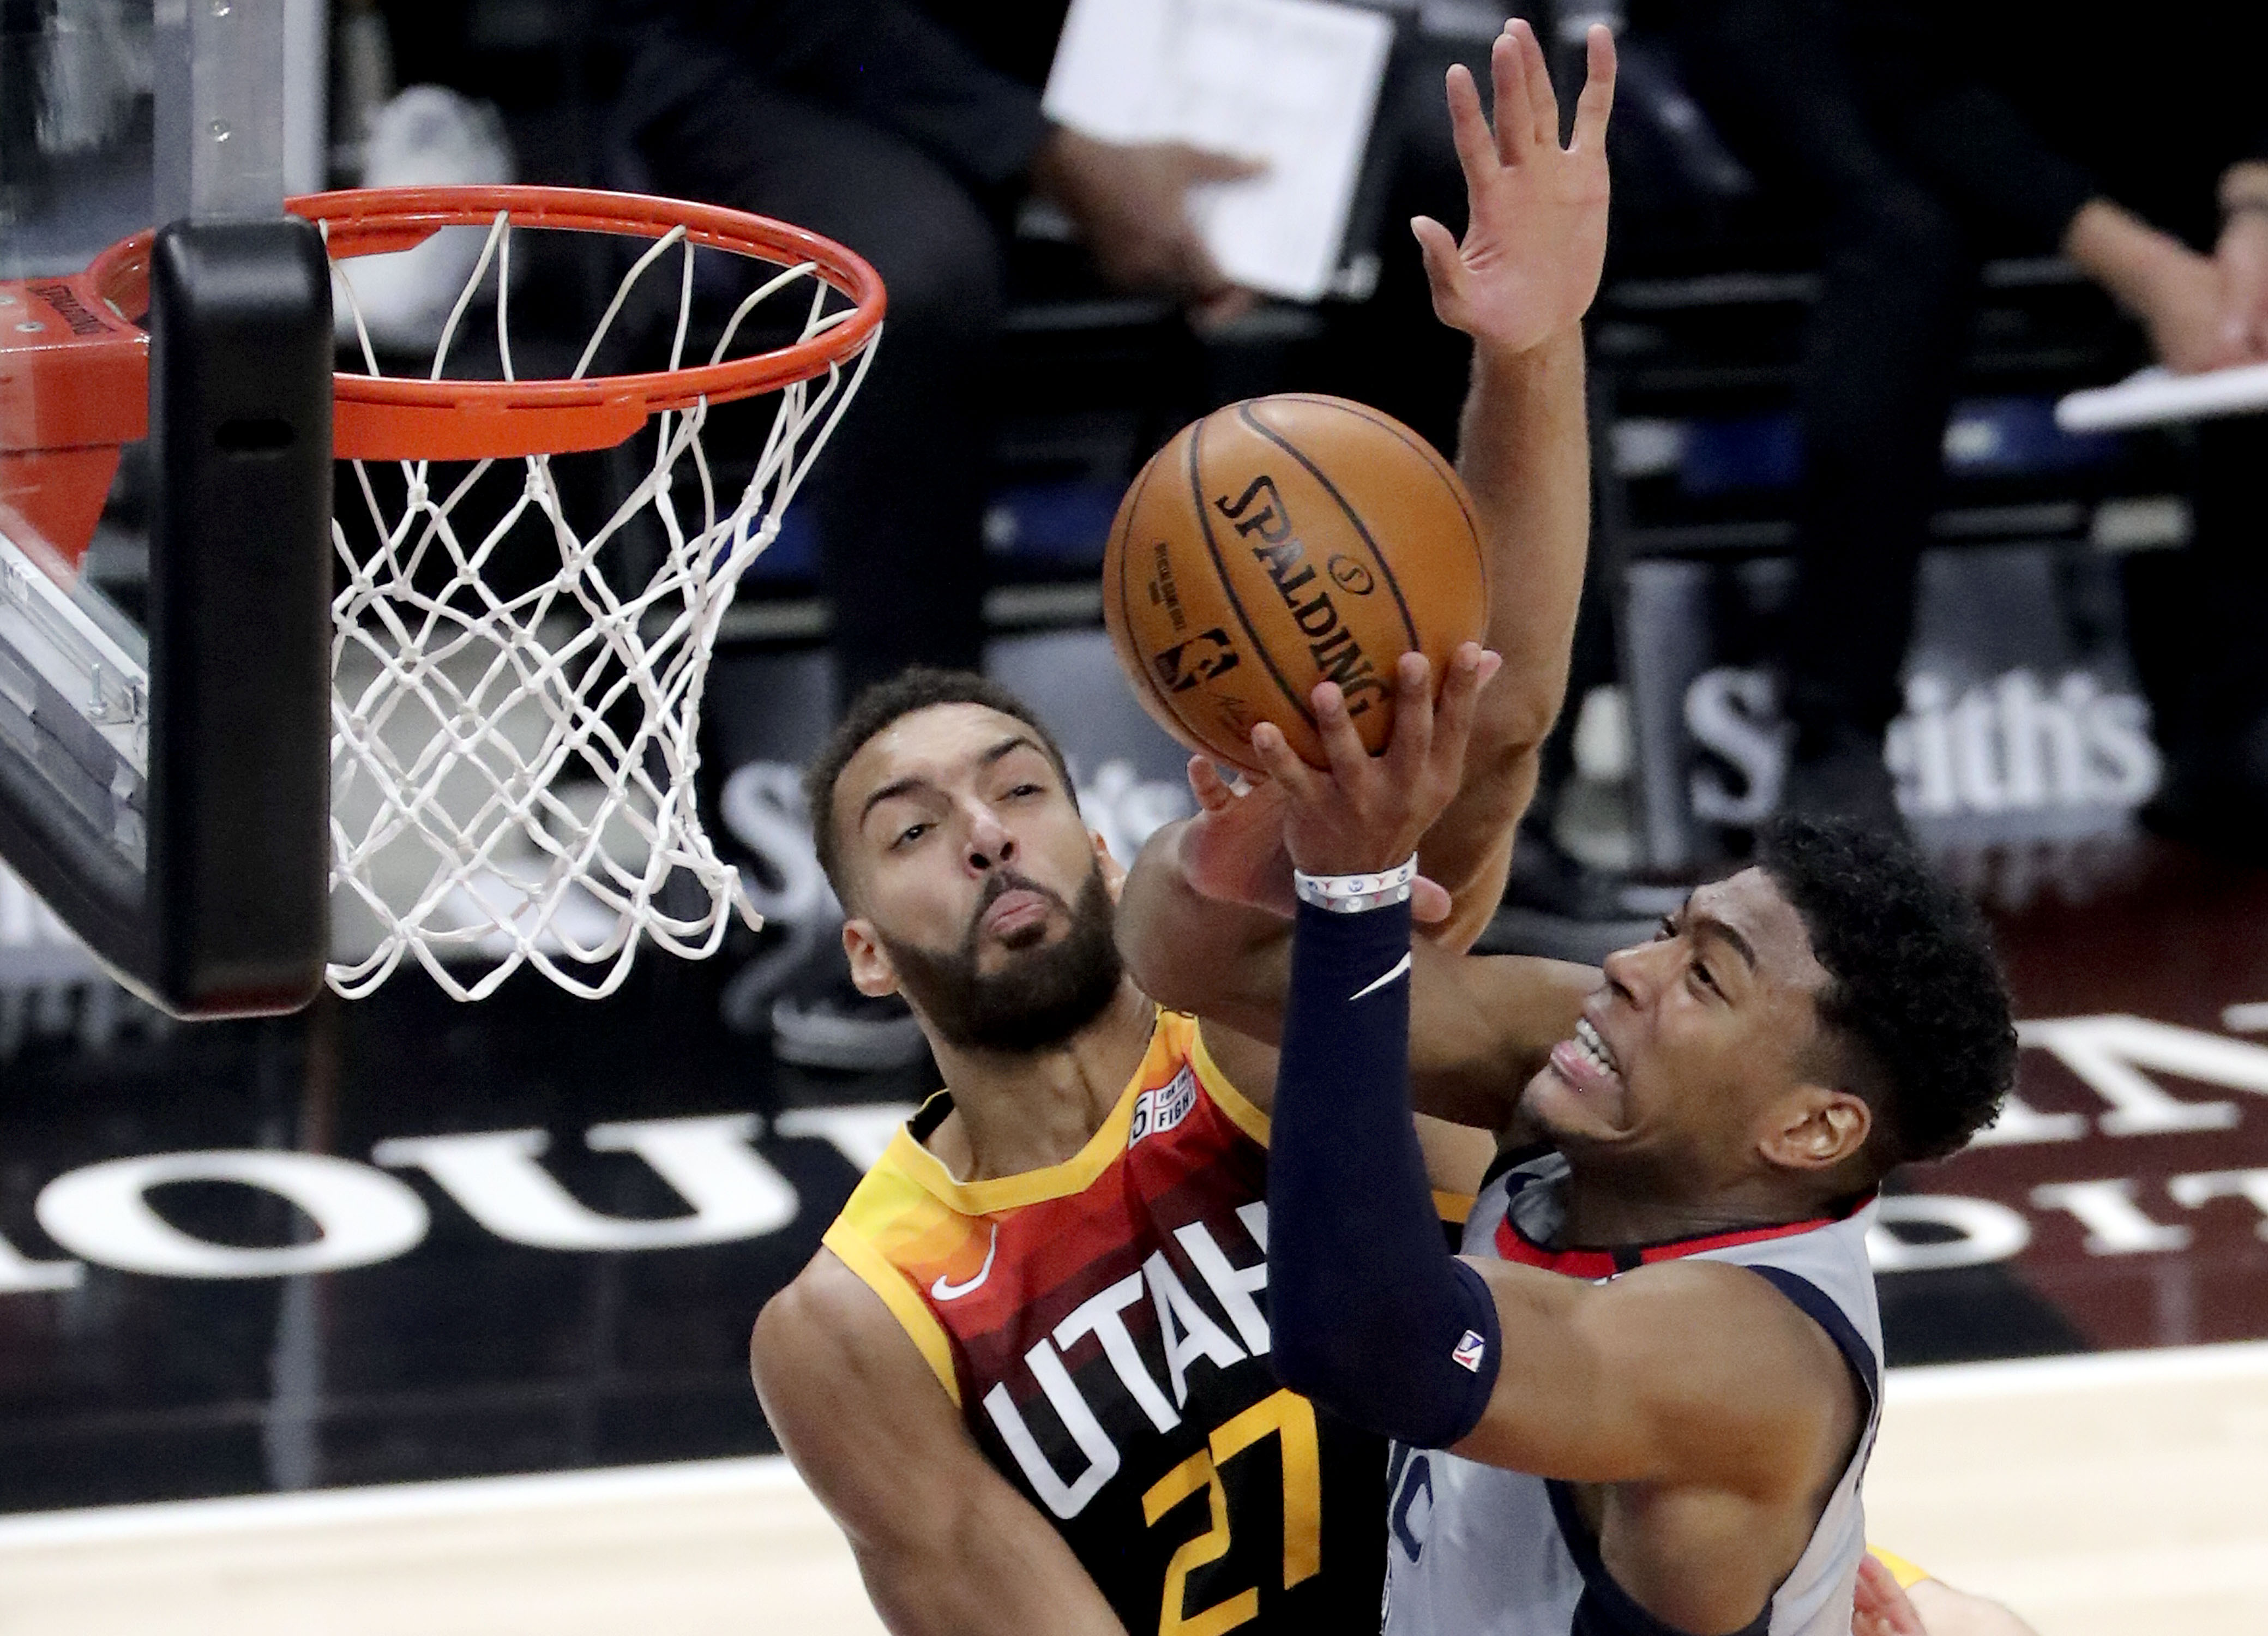 Utah Jazz center Rudy Gobert was named to the NBA All-Defensive team.